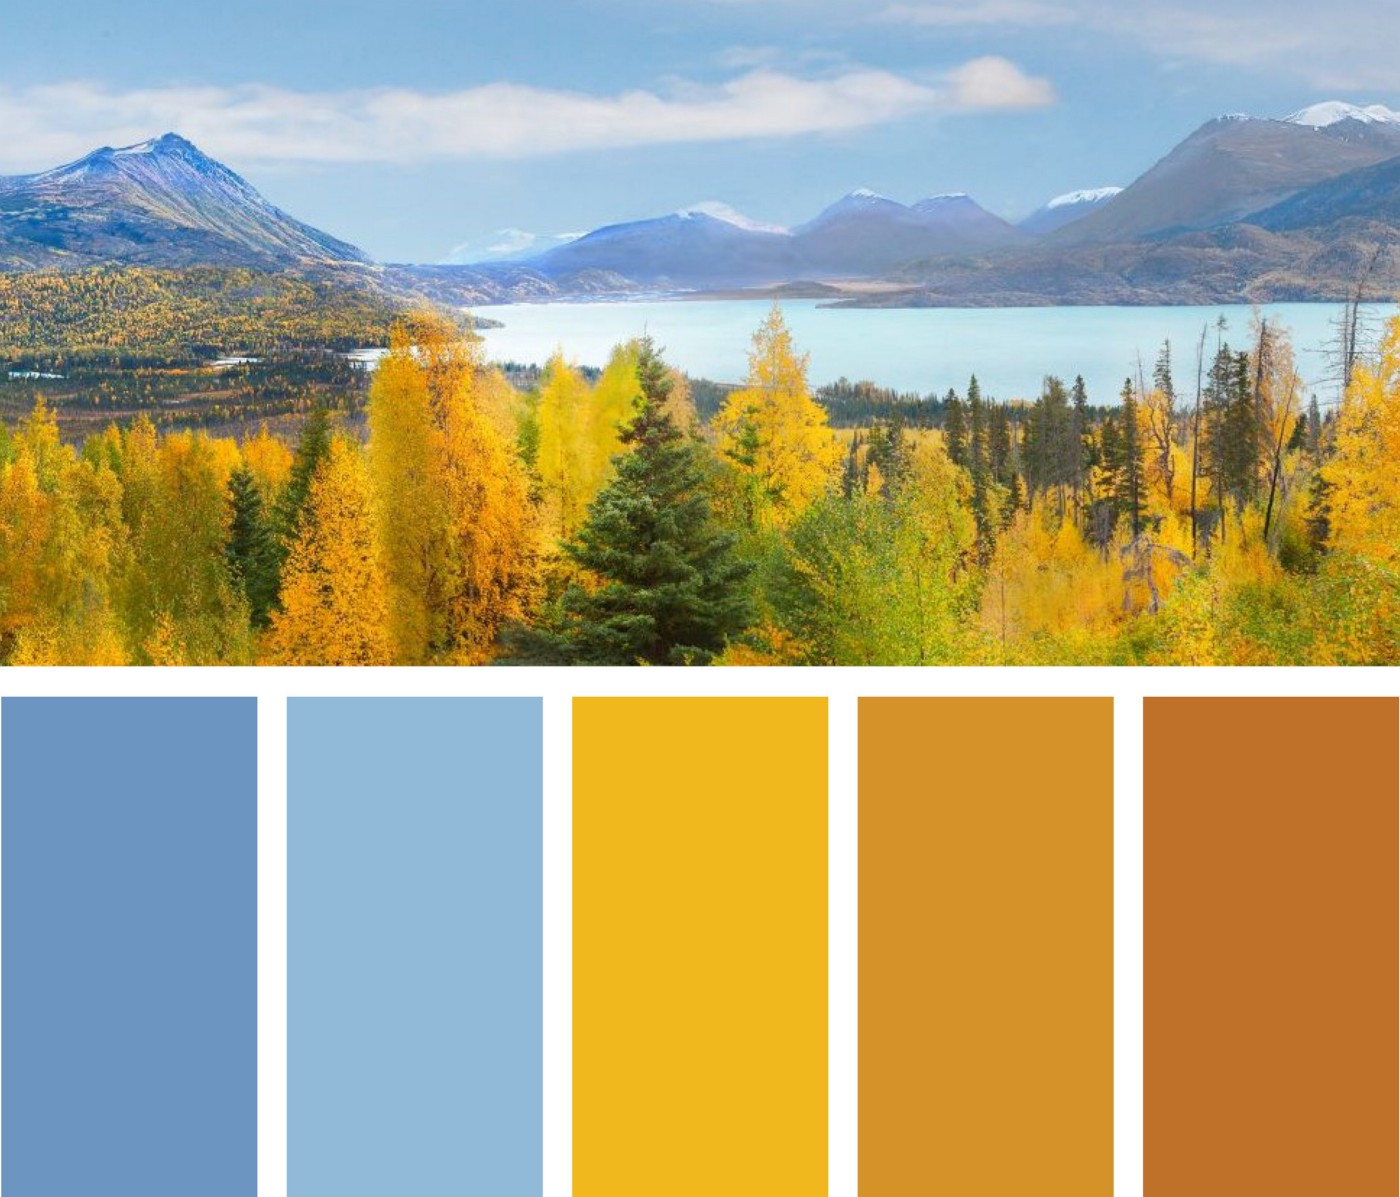 Landscape of lake, mountains, and trees at Kenai National Wildlife Refuge with color blocks of blues, yellows, oranges